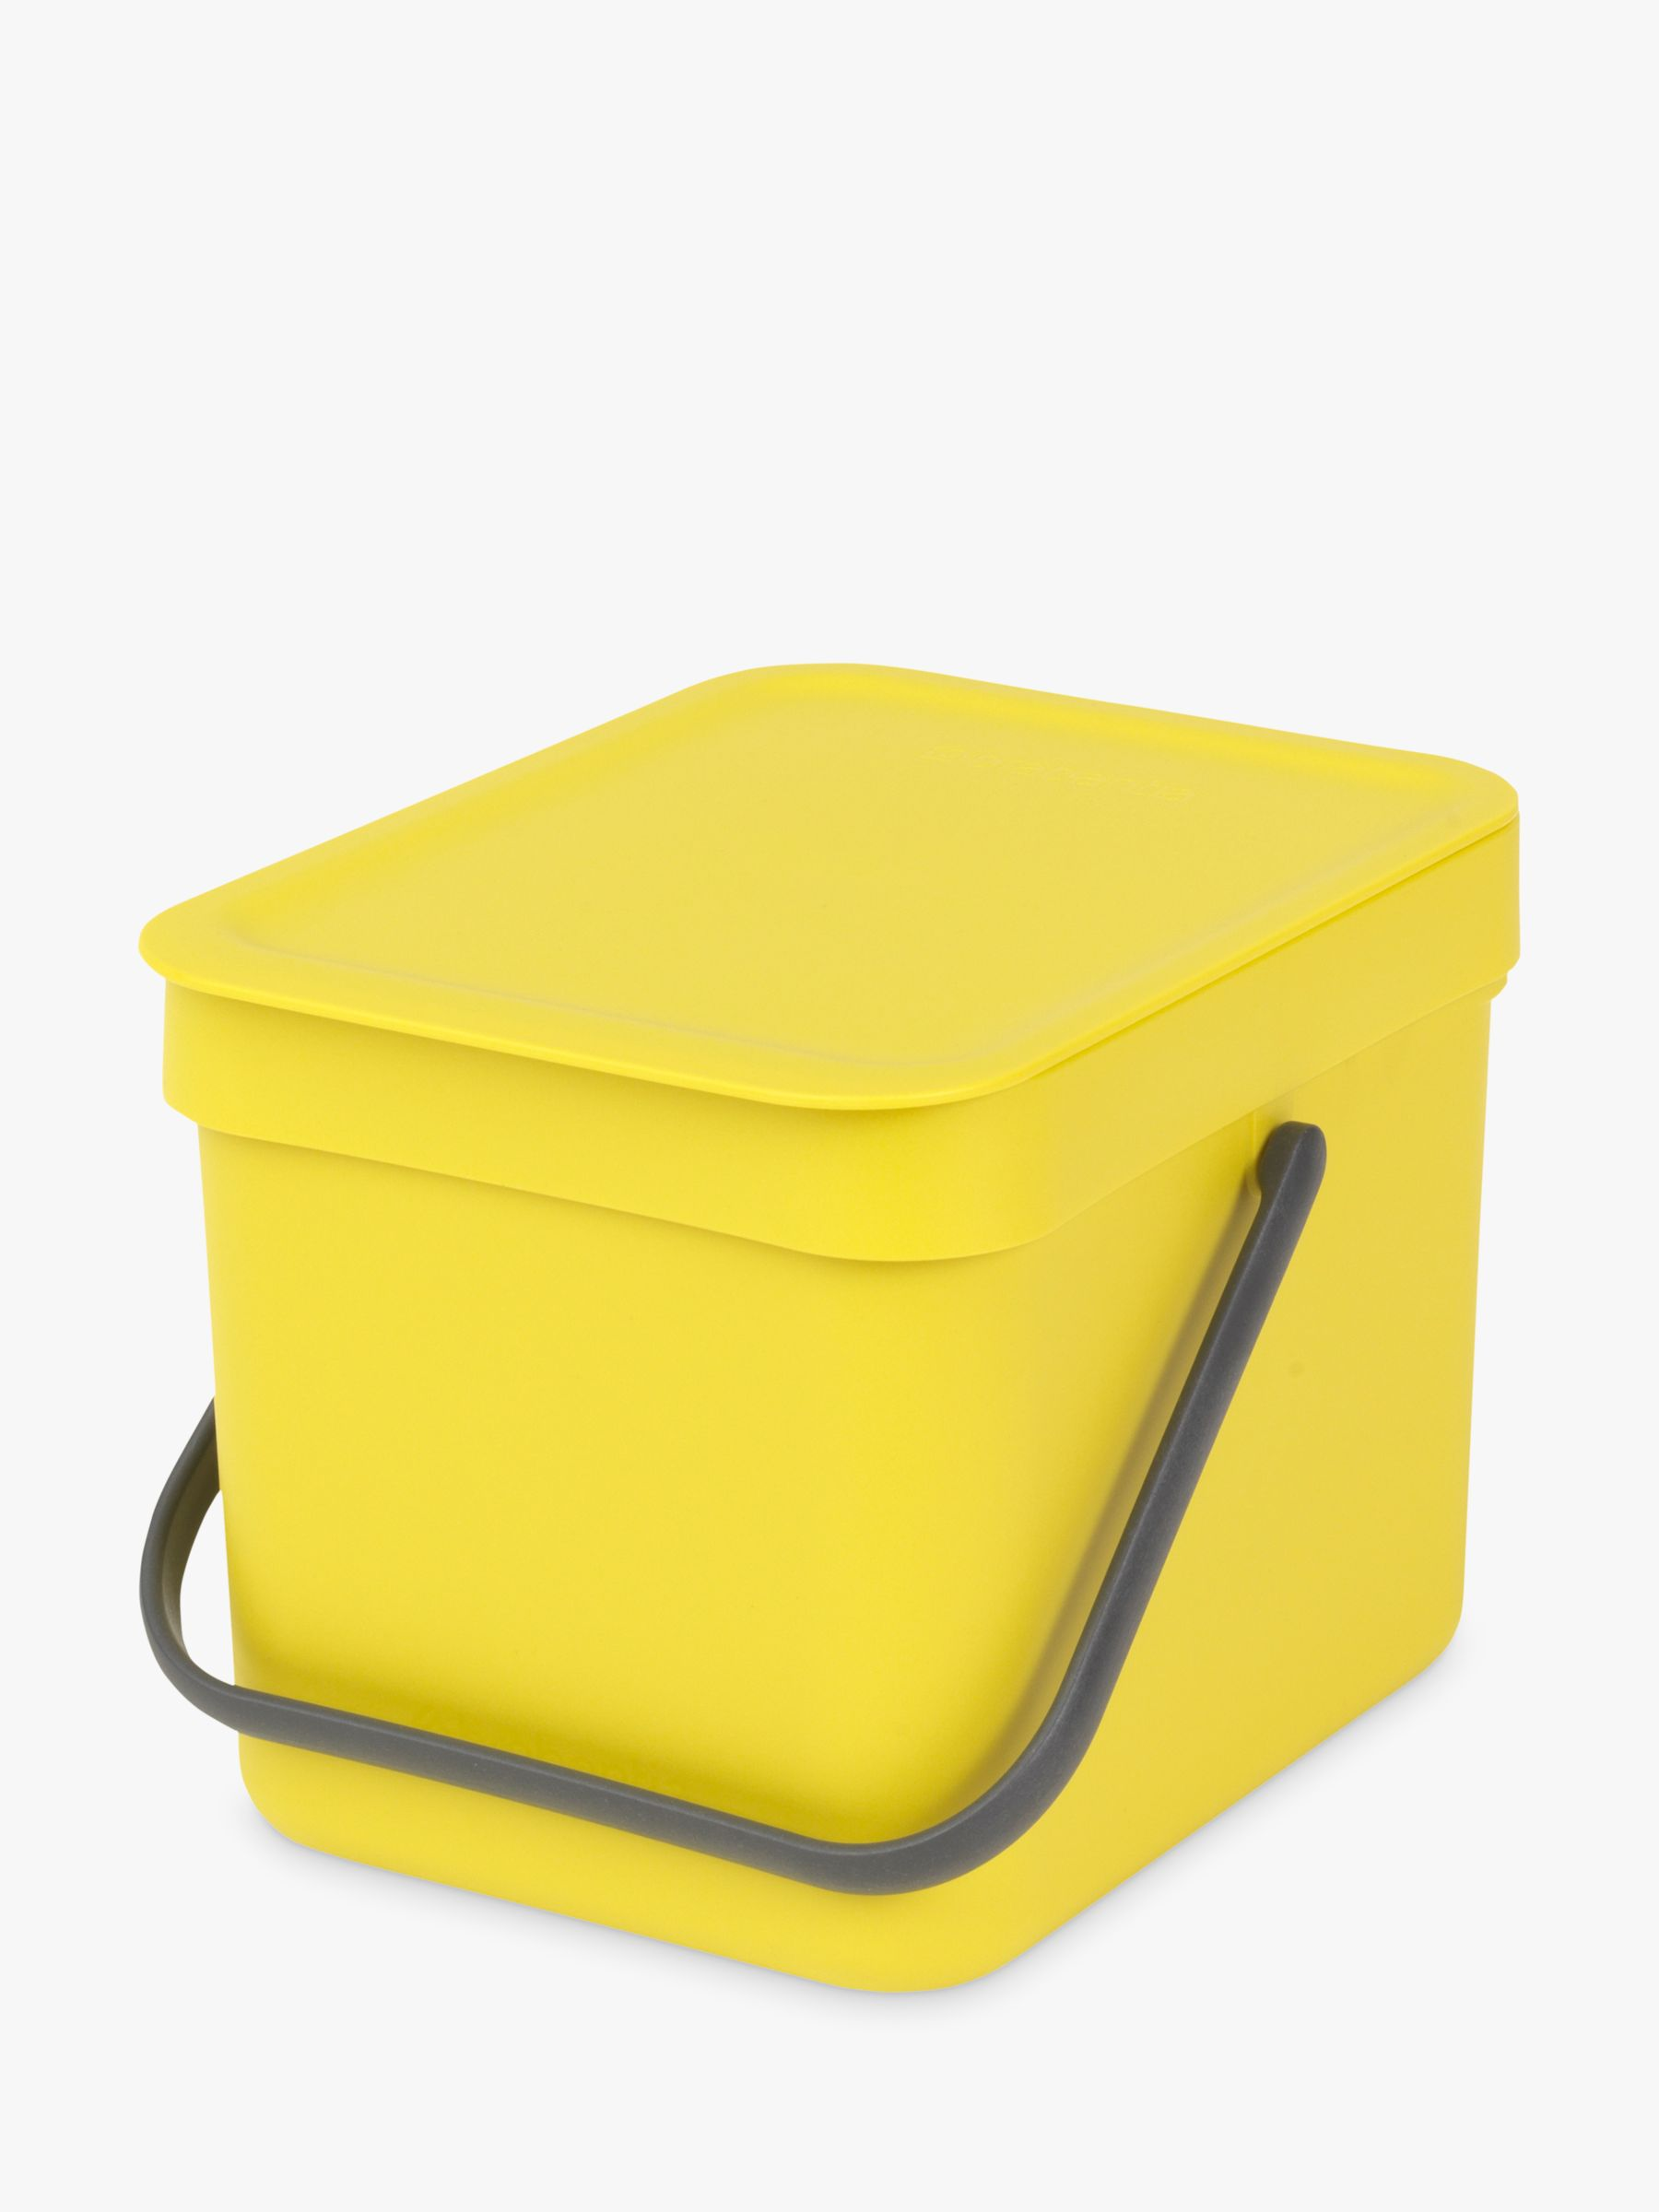 Brabantia Brabantia Sort & Go Built-In Bin, Yellow, 6L